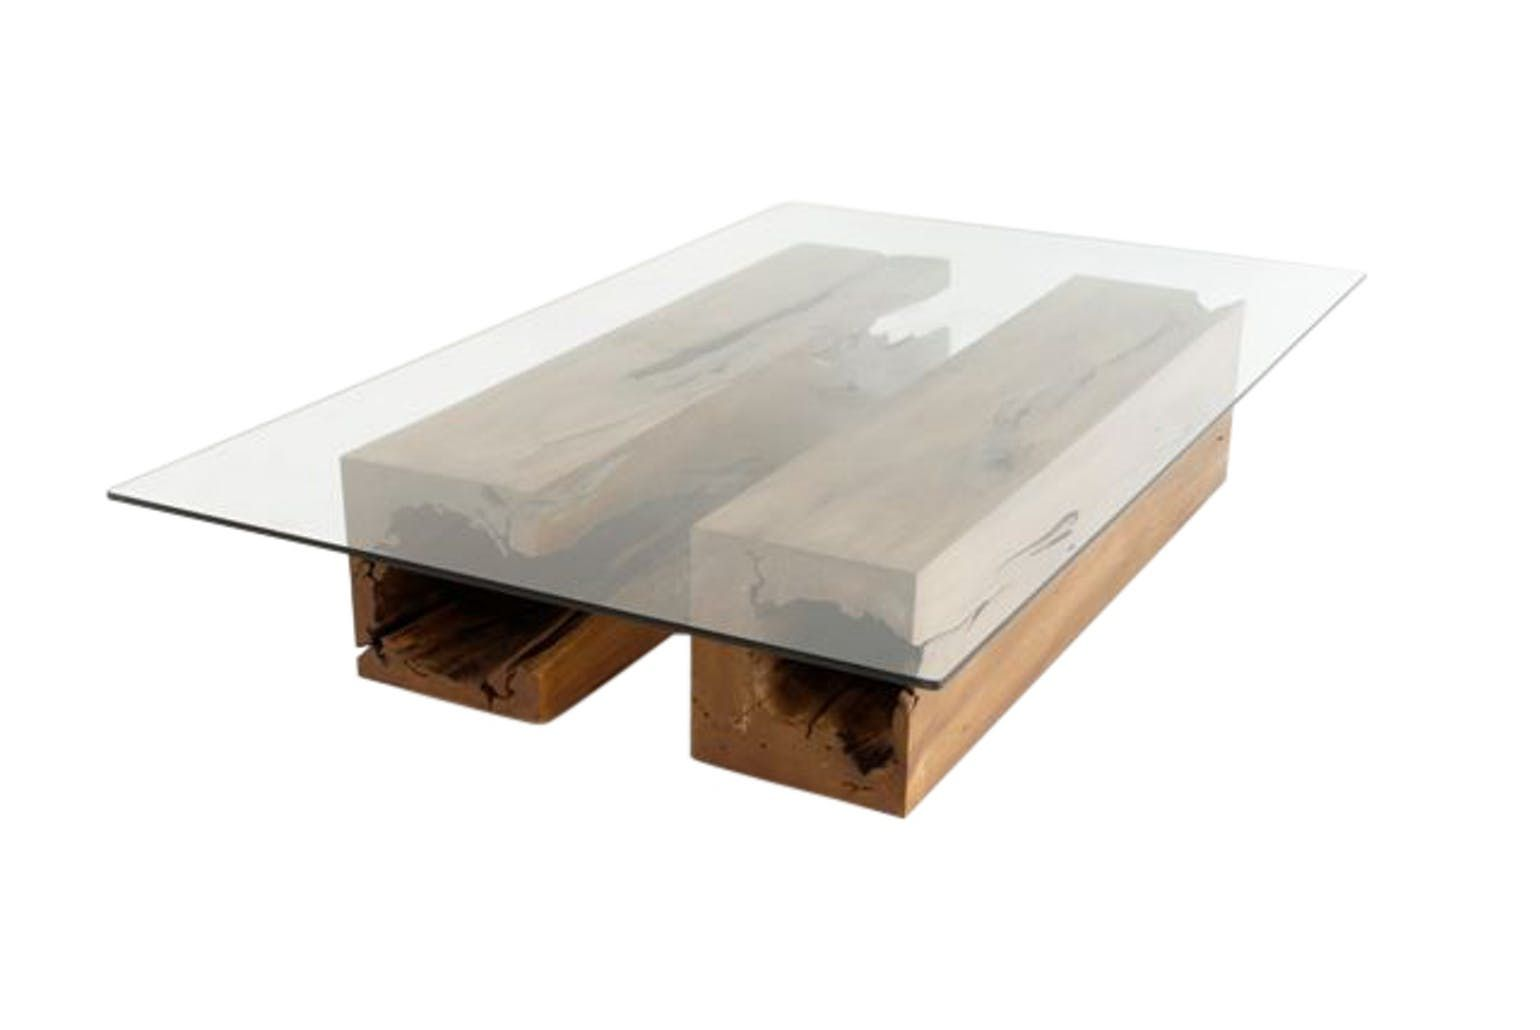 Twin Coffee Table Midcentury Modern Glass Coffee Cocktail Table By Rotsen Furniture Cool Coffee Tables Coffee Table Wood Coffee Table Rectangle